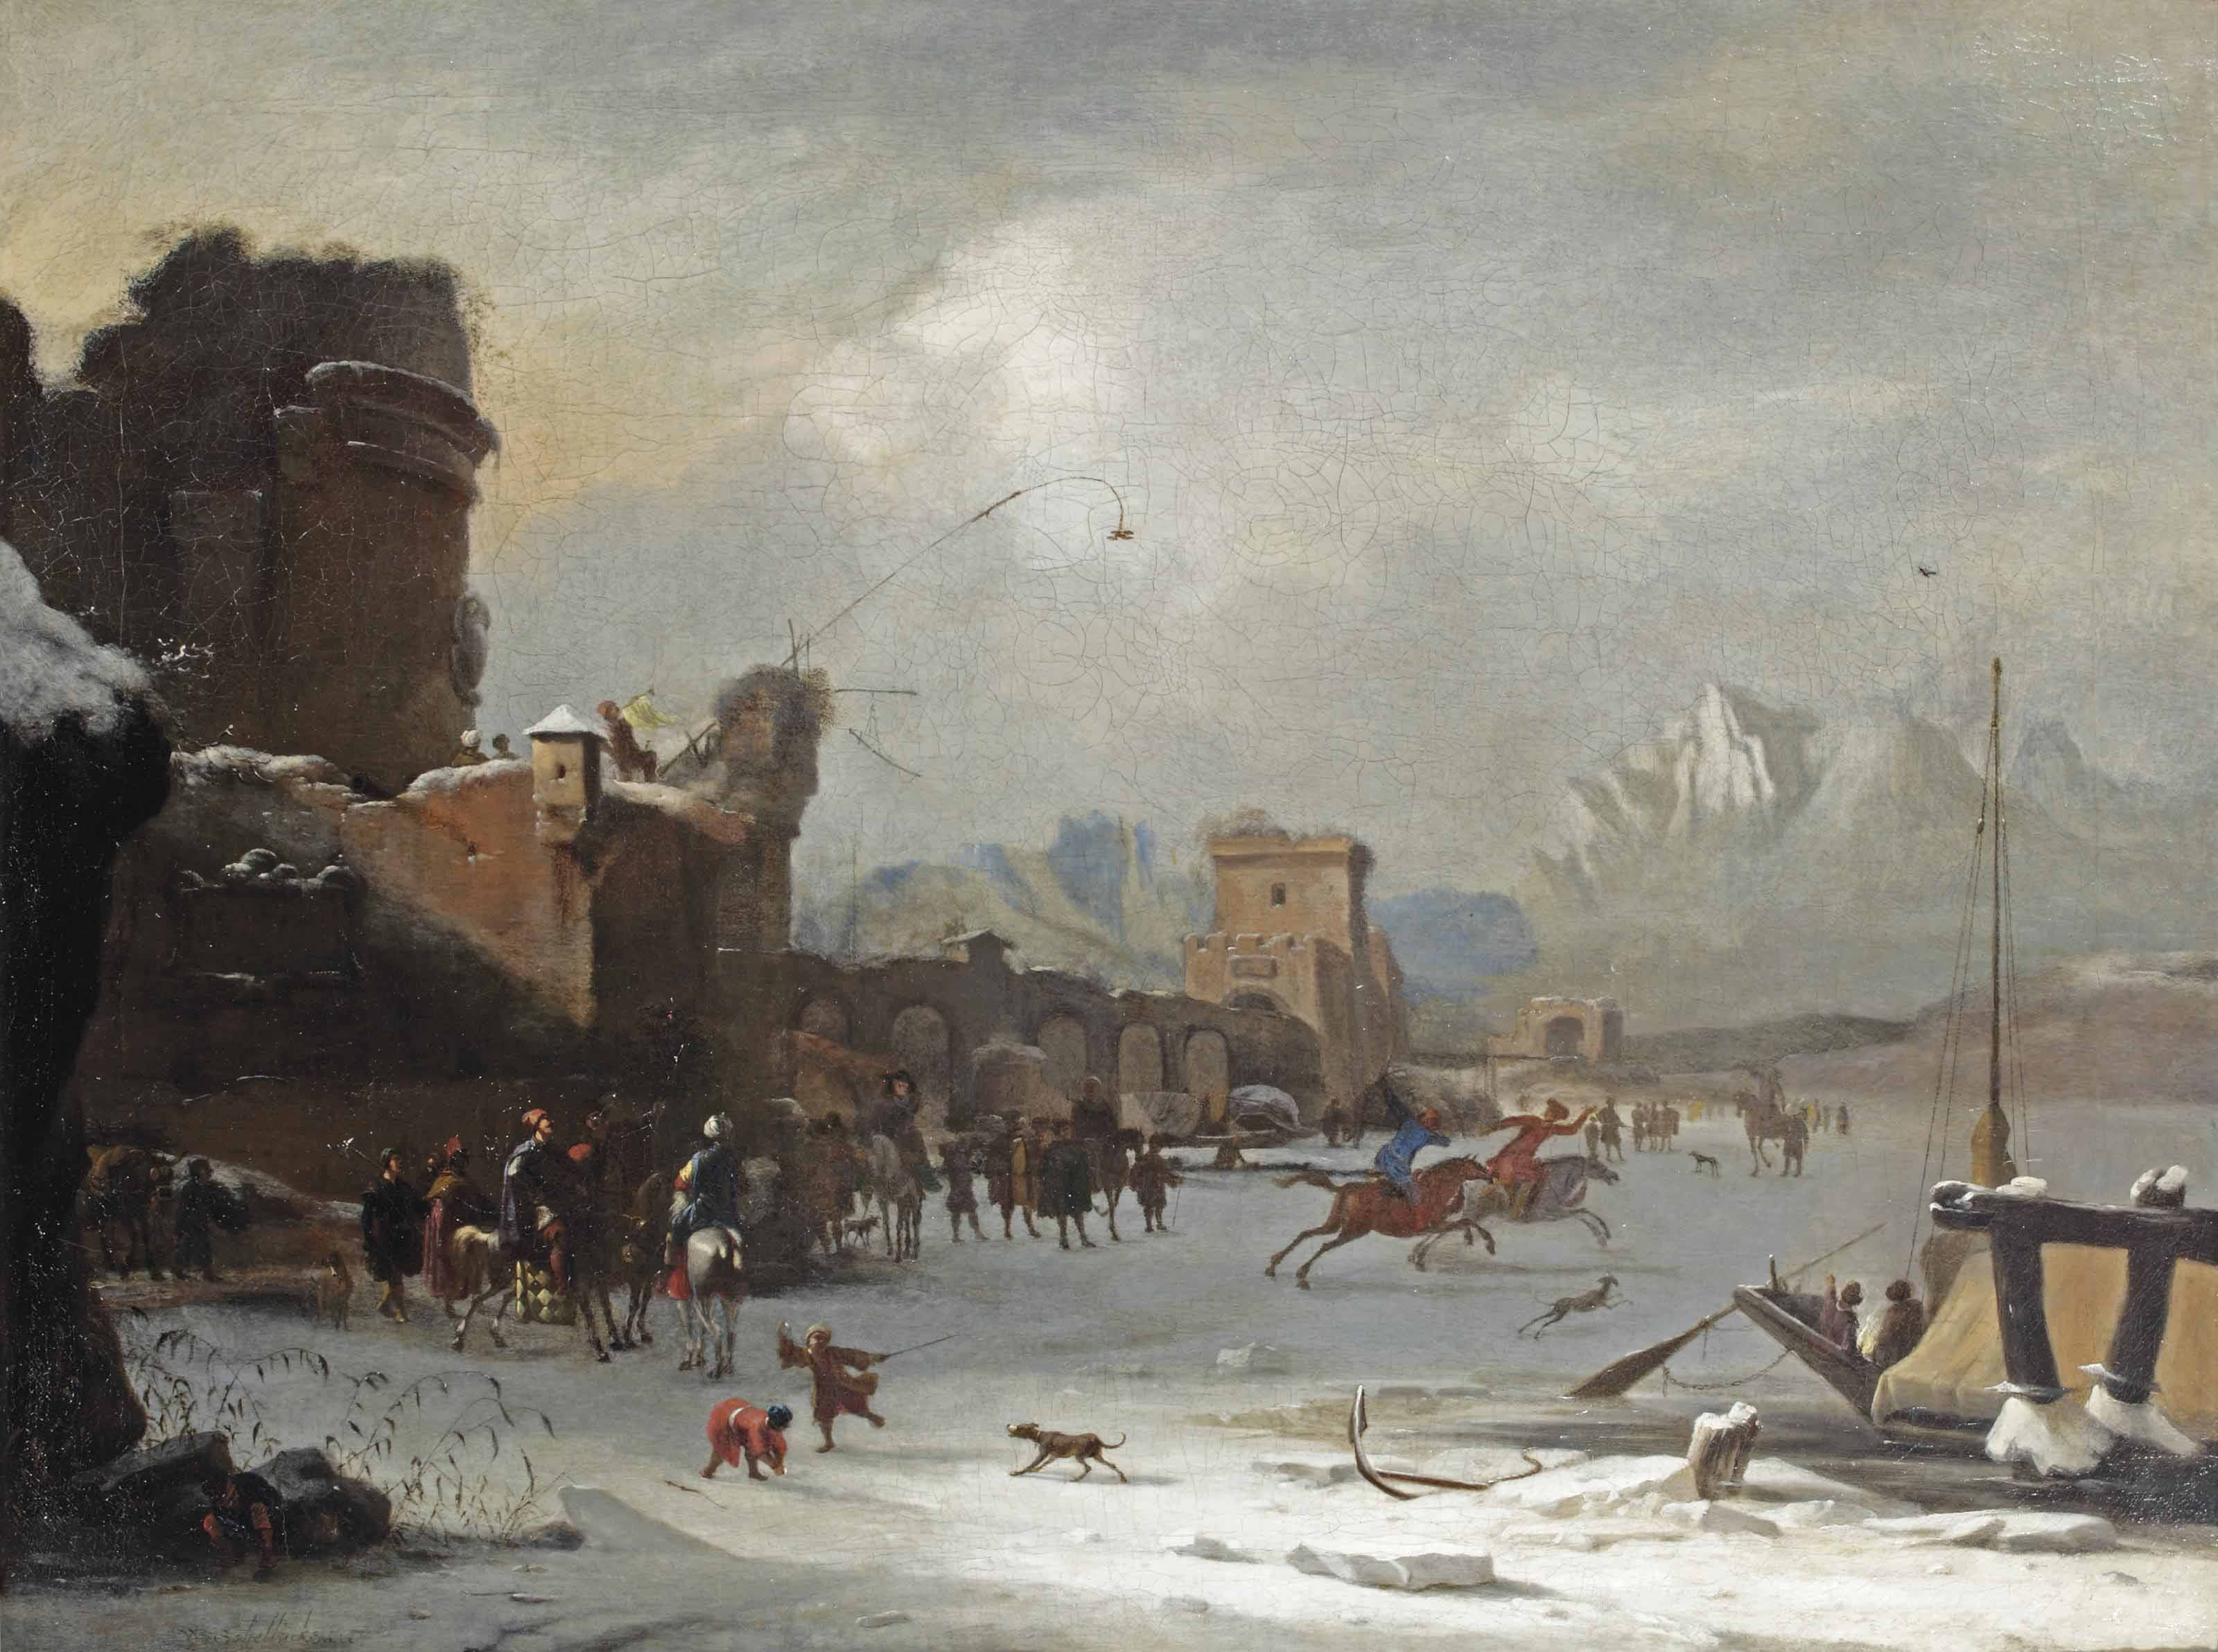 A winter landscape with horsemen racing and other figures on the frozen Tiber near the Ponte Molle, Rome